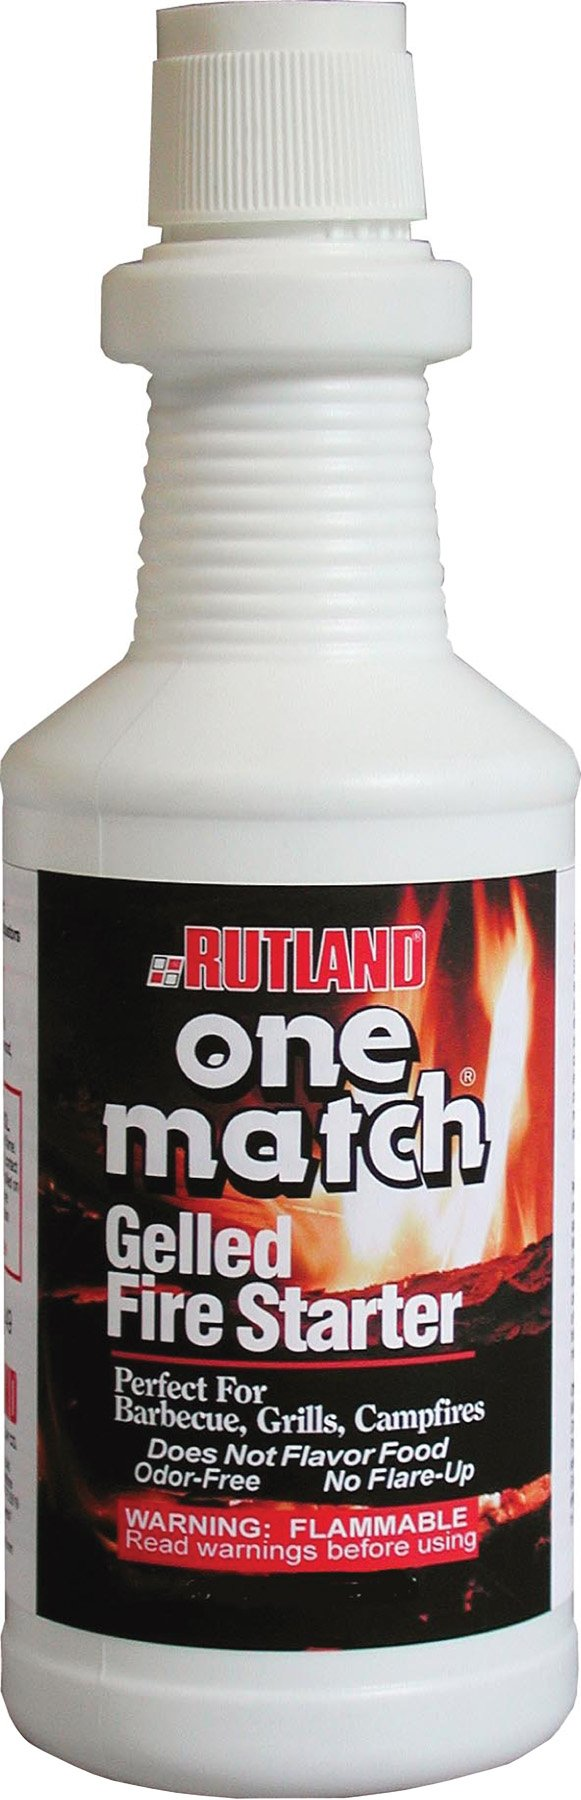 One Match  Gel Fire Starter, 32 fl. oz. (Package may vary) by Rutland Products